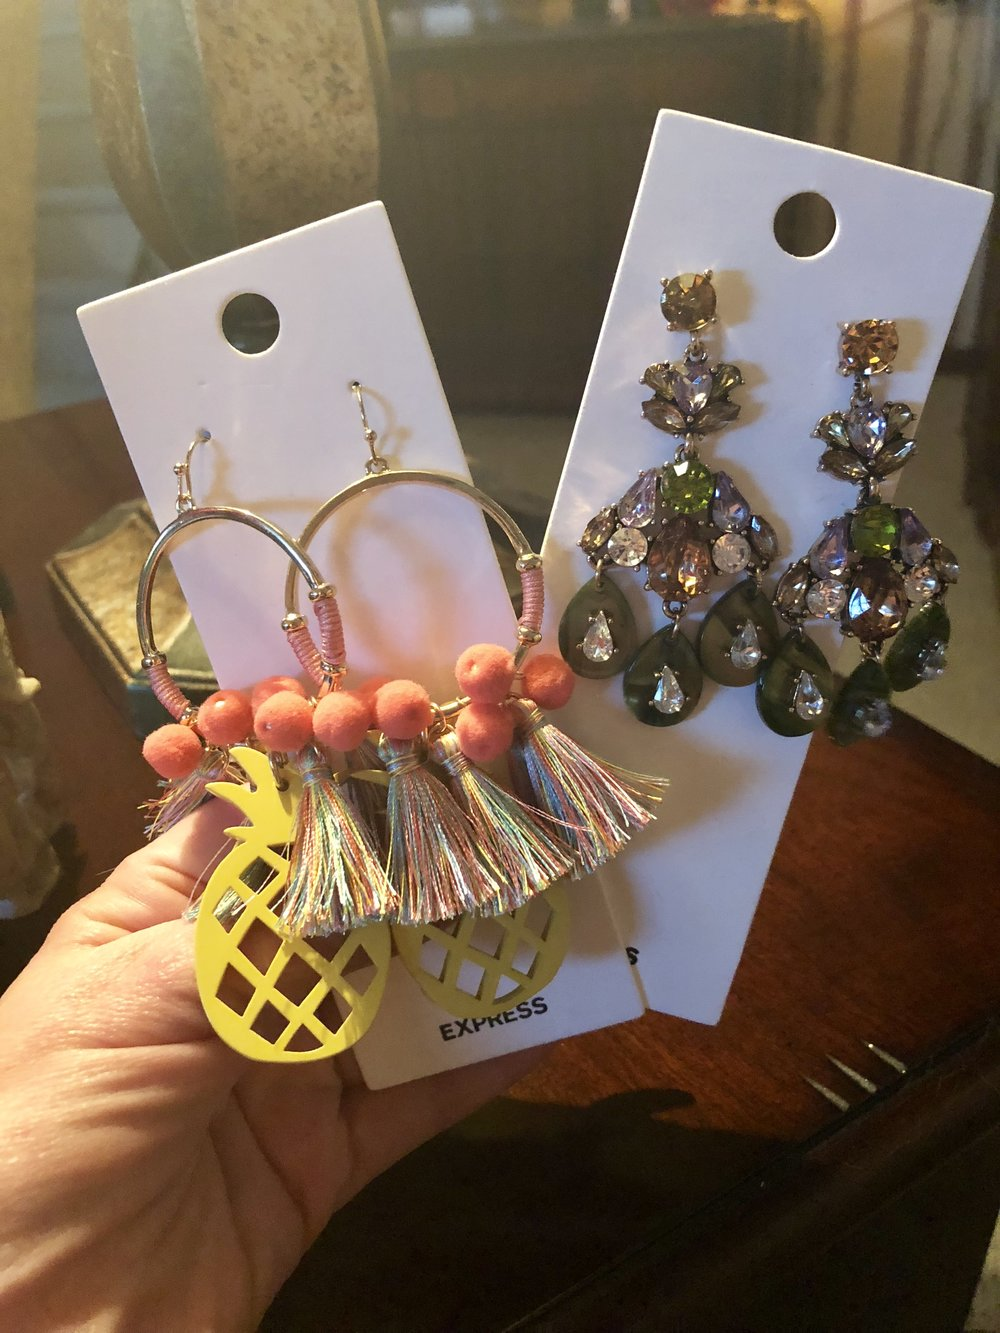 I recently purchased these at Express through use of a coupon and rewards!  As a result, I got both of these for less than $10.  I love pineapples and had to have these, and I never have a good pair of green earrings when I need them.  I linked up both pairs, along with some similar pineapple ones available!